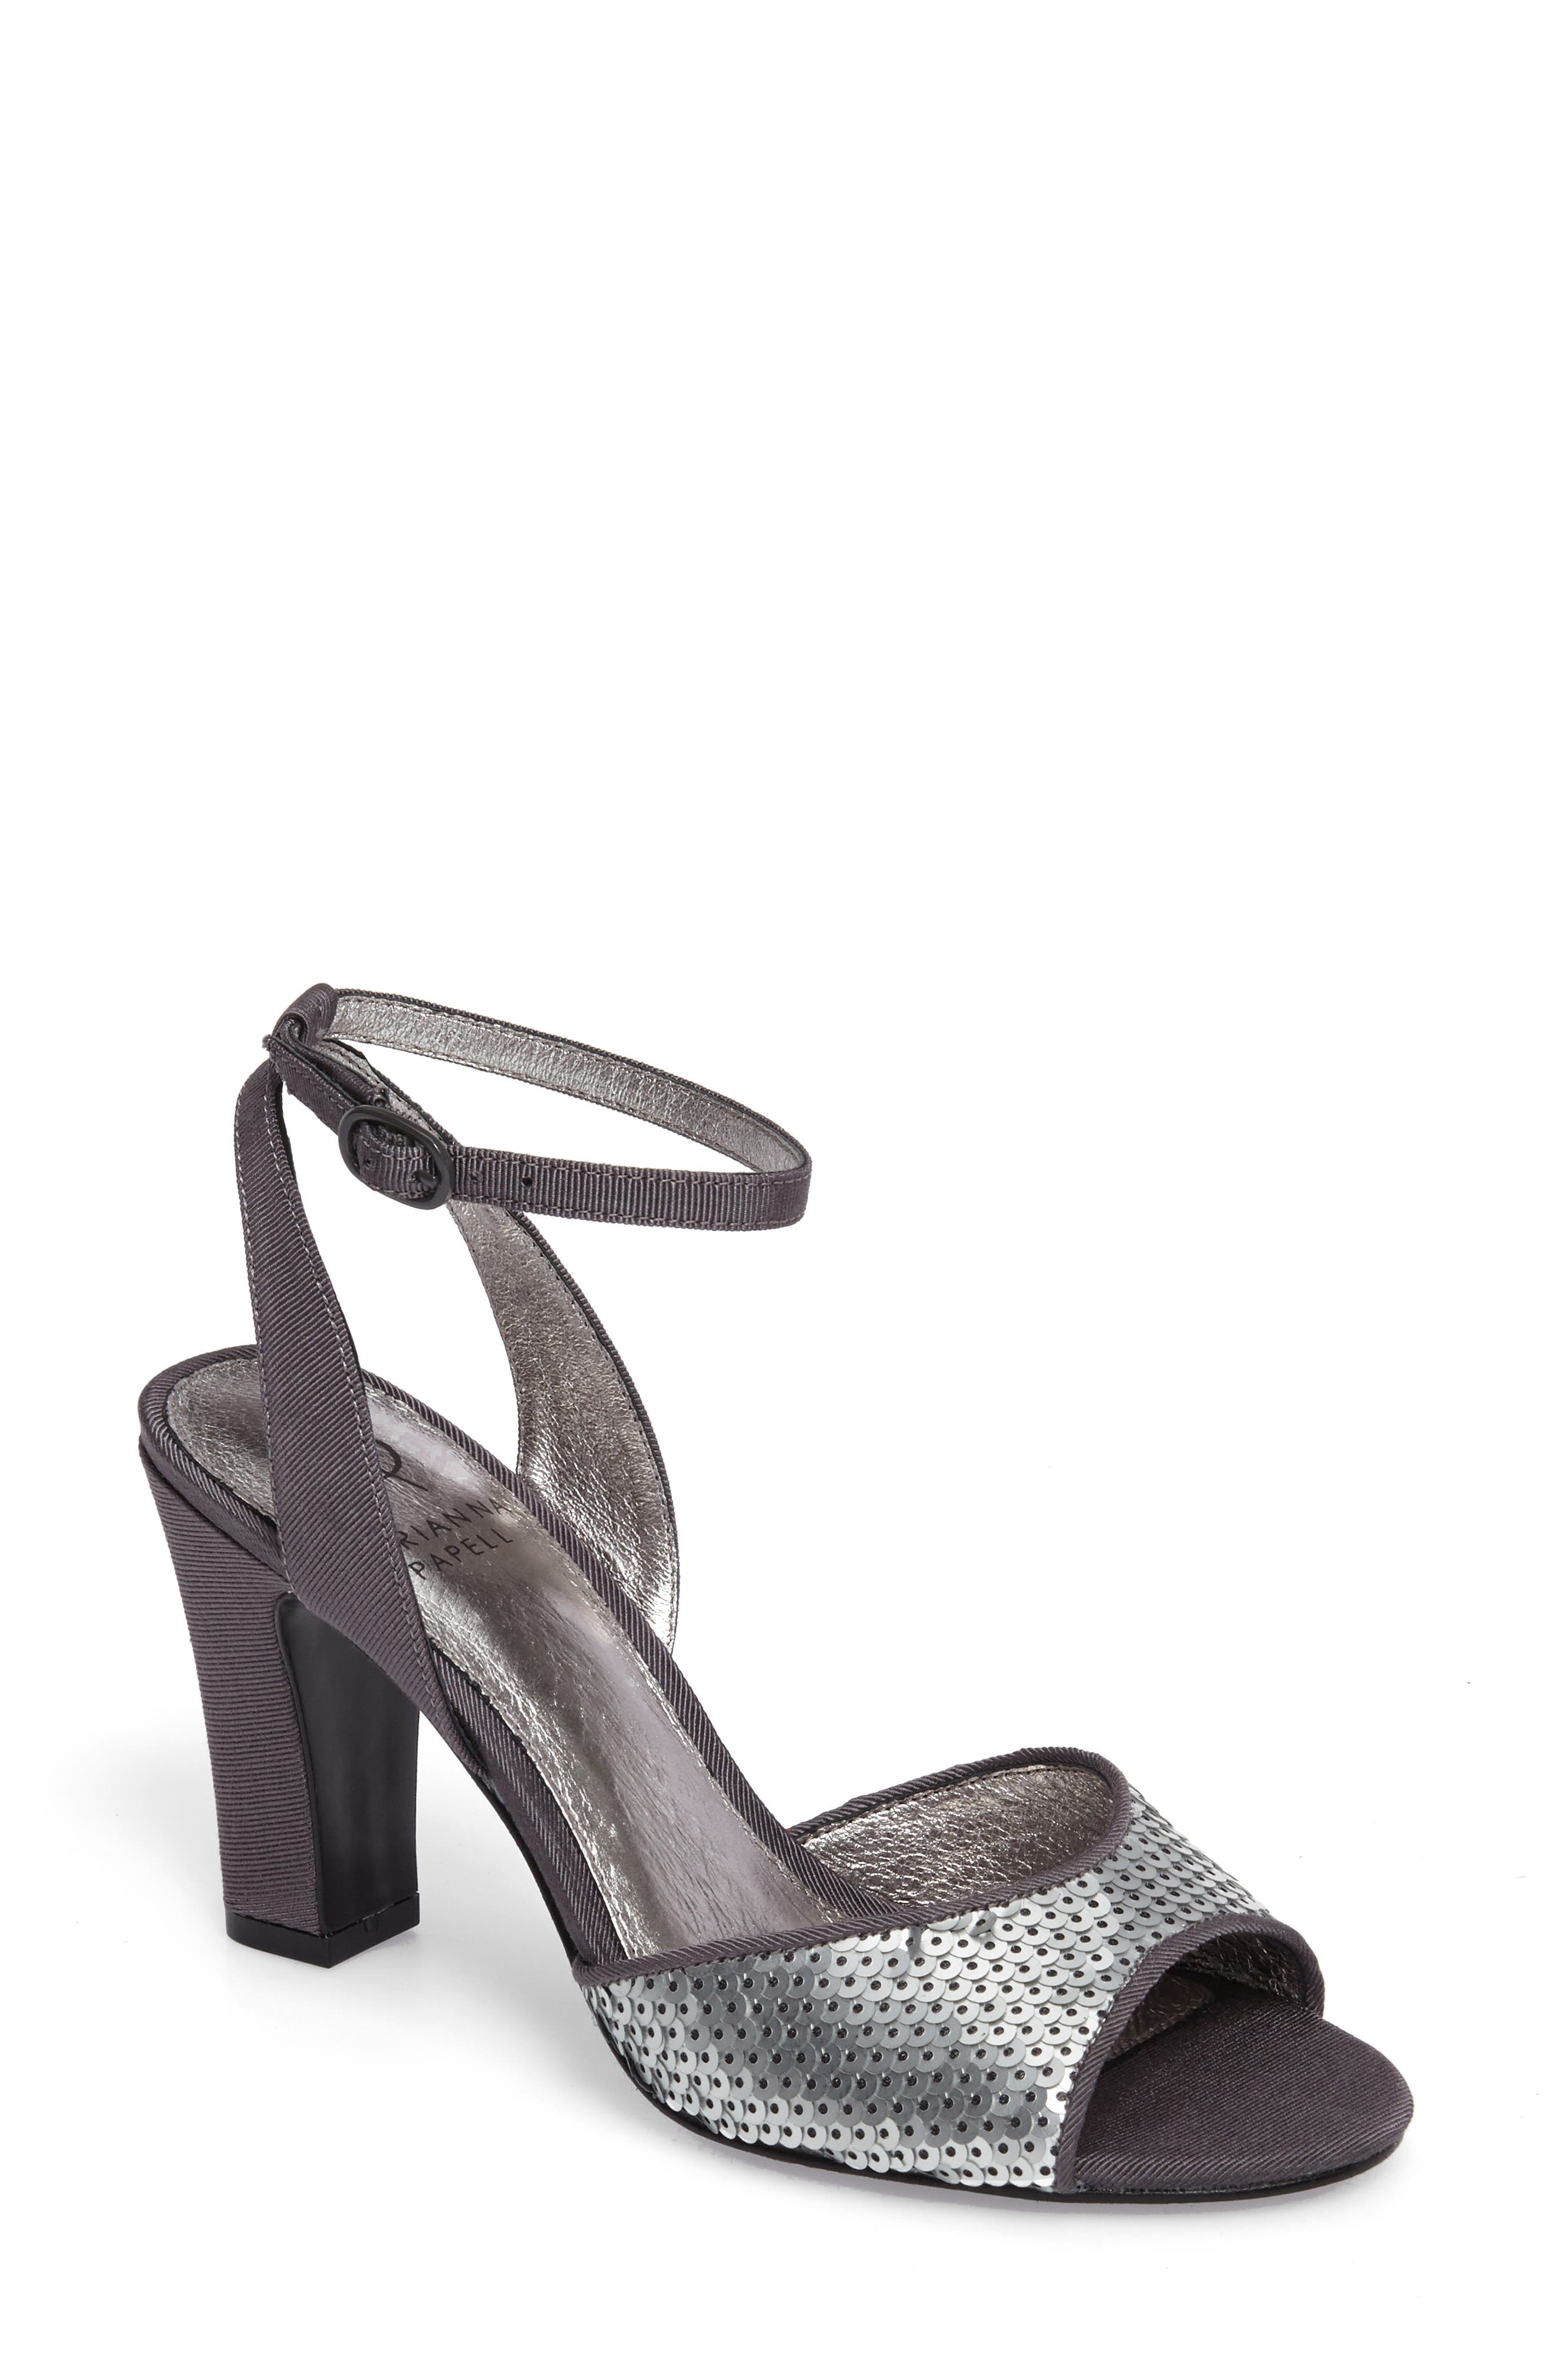 Adrianna Papell Astrid Ankle Strap Sandal (Women)